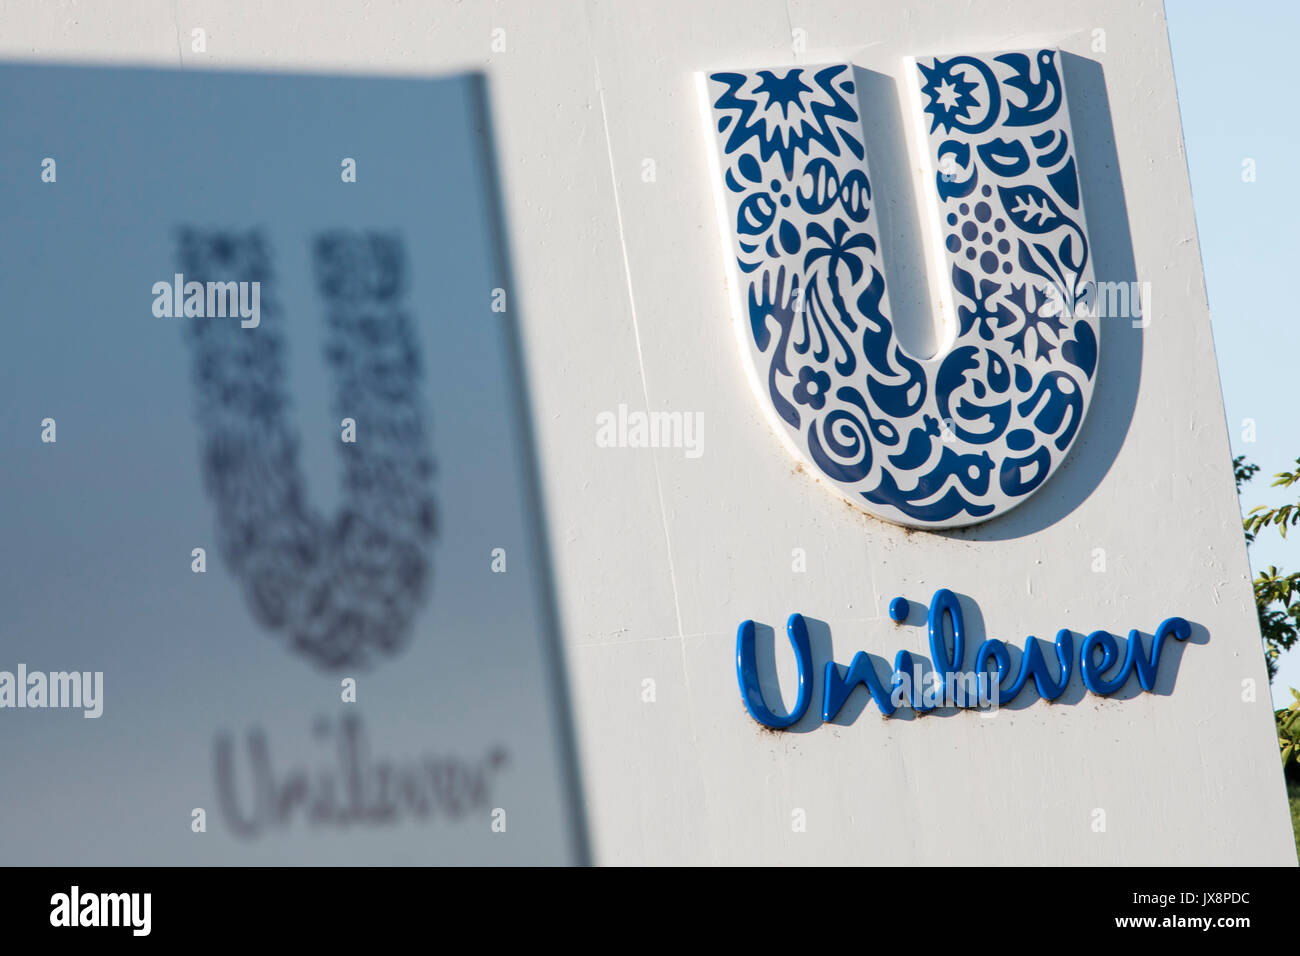 A logo sign outside of a facility occupied by Unilever in Newville, Pennsylvania on July 30, 2017. Stock Photo